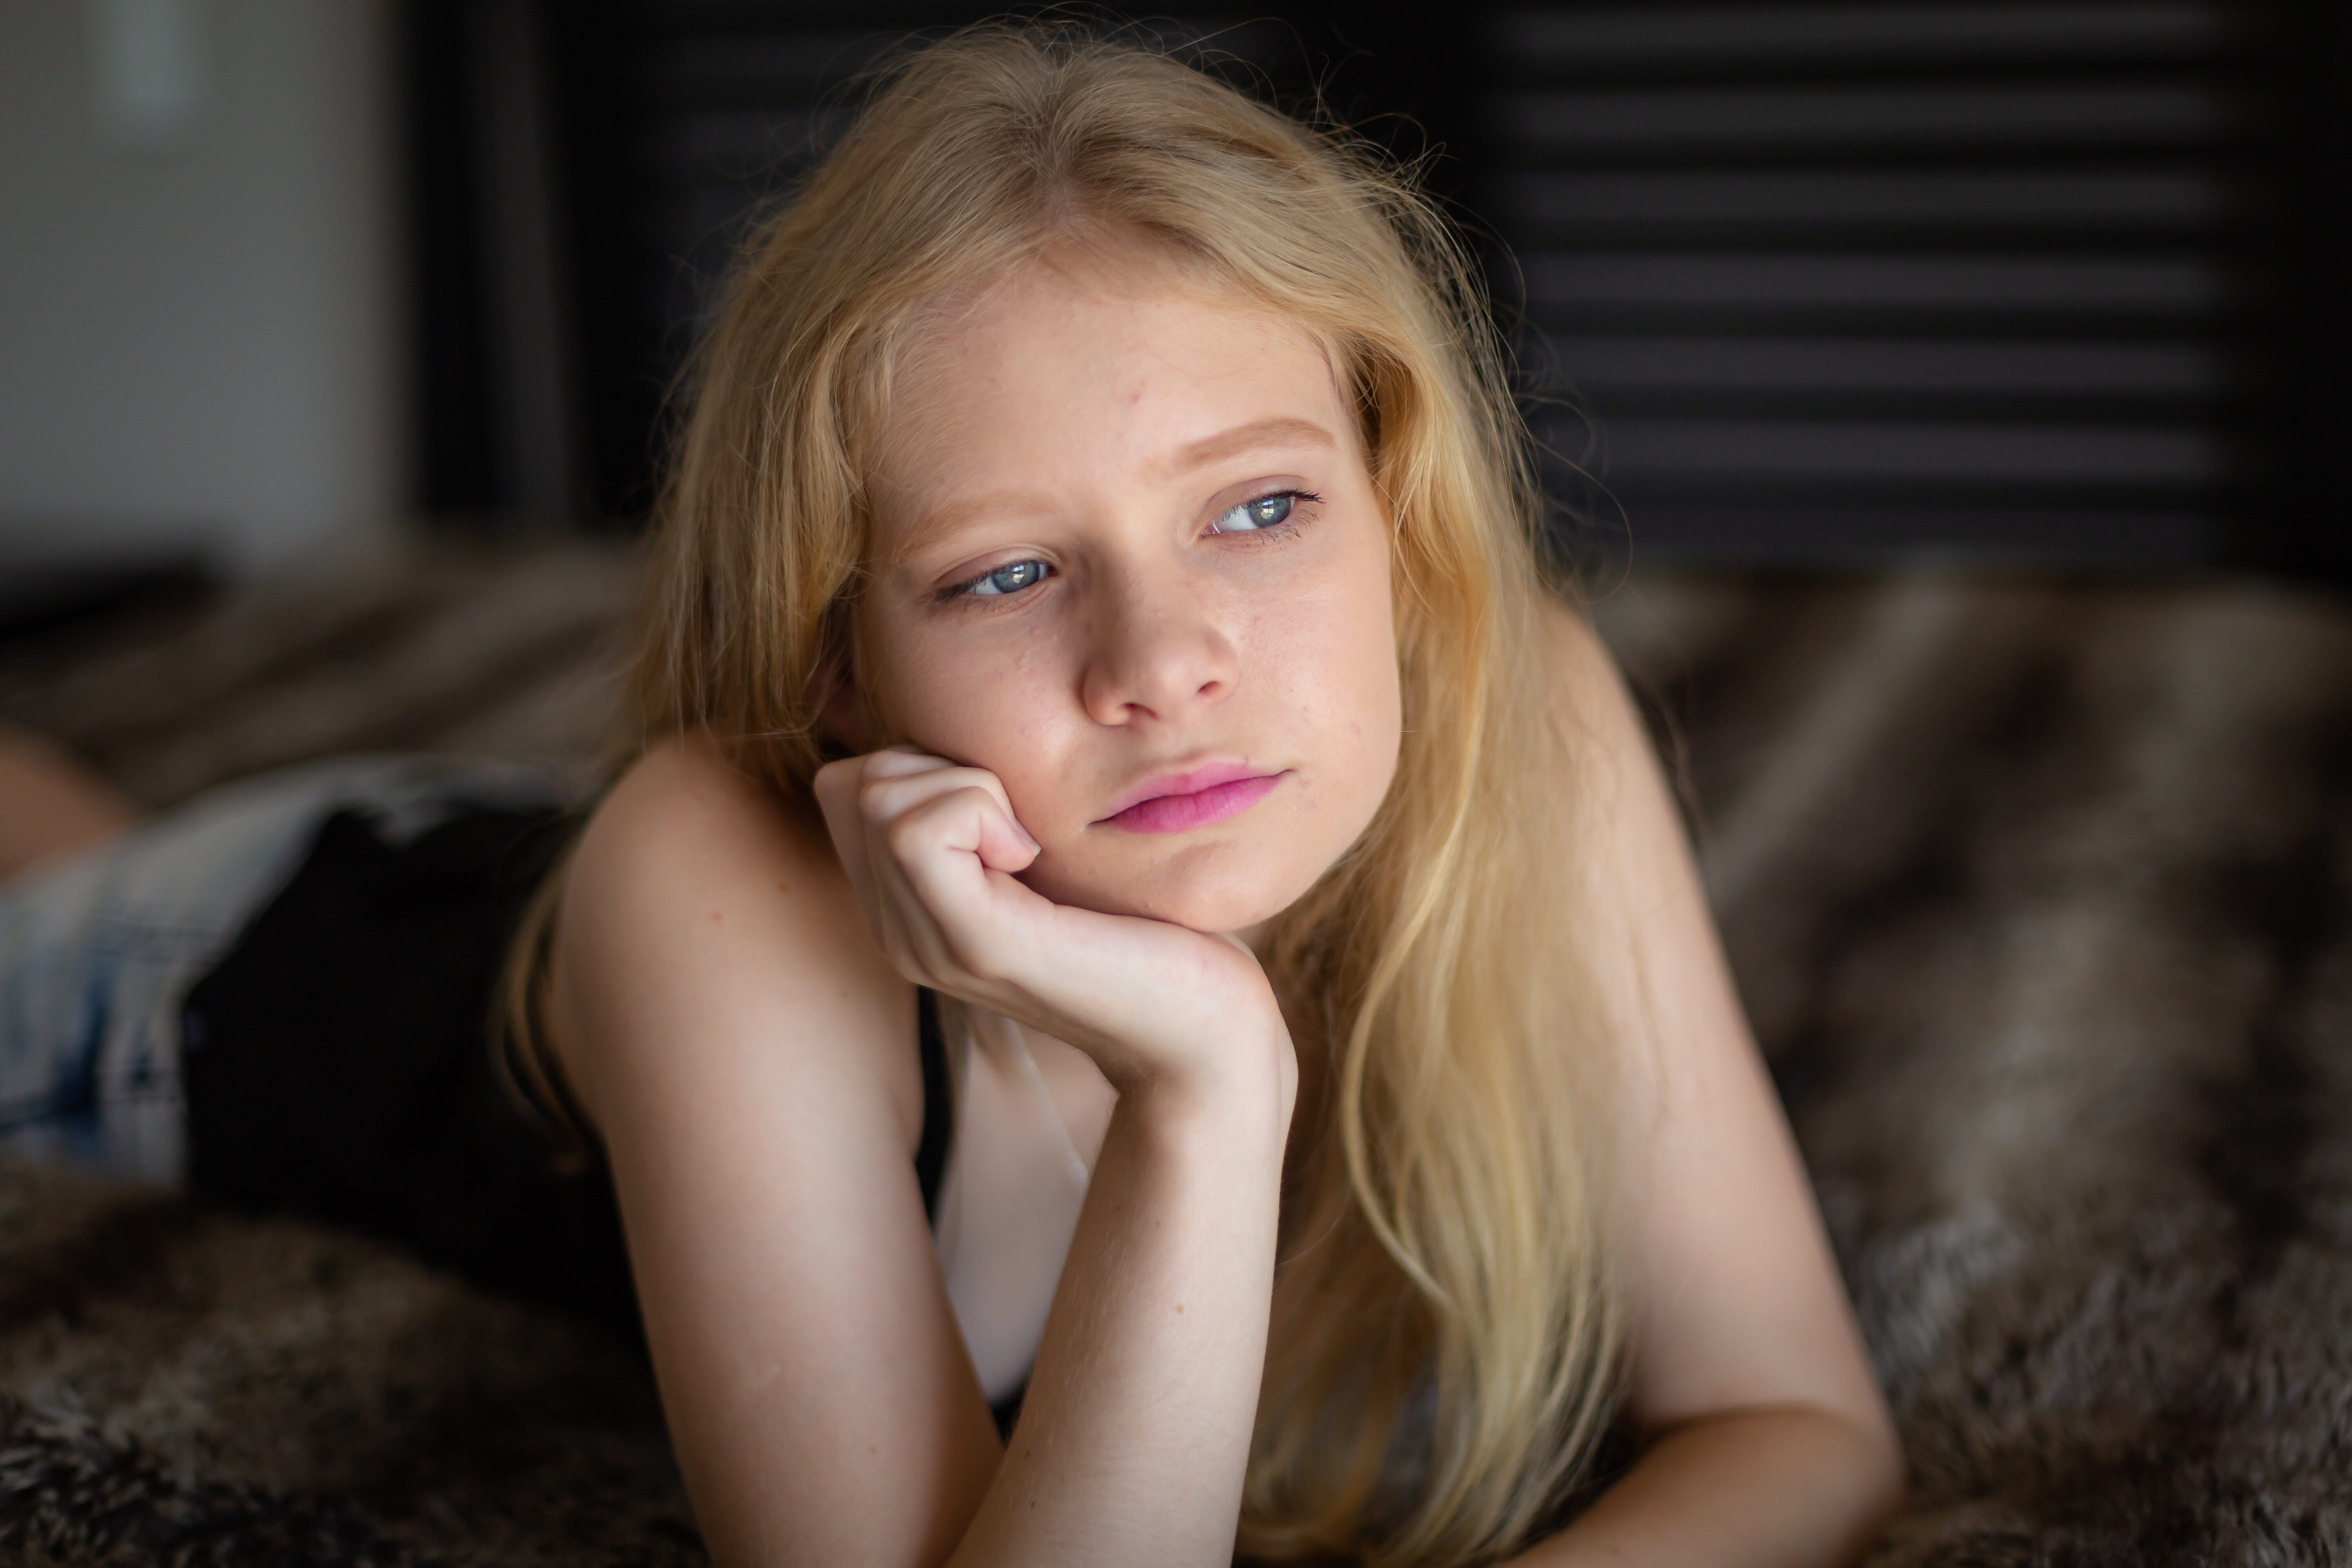 Teen girl gazes out of the window